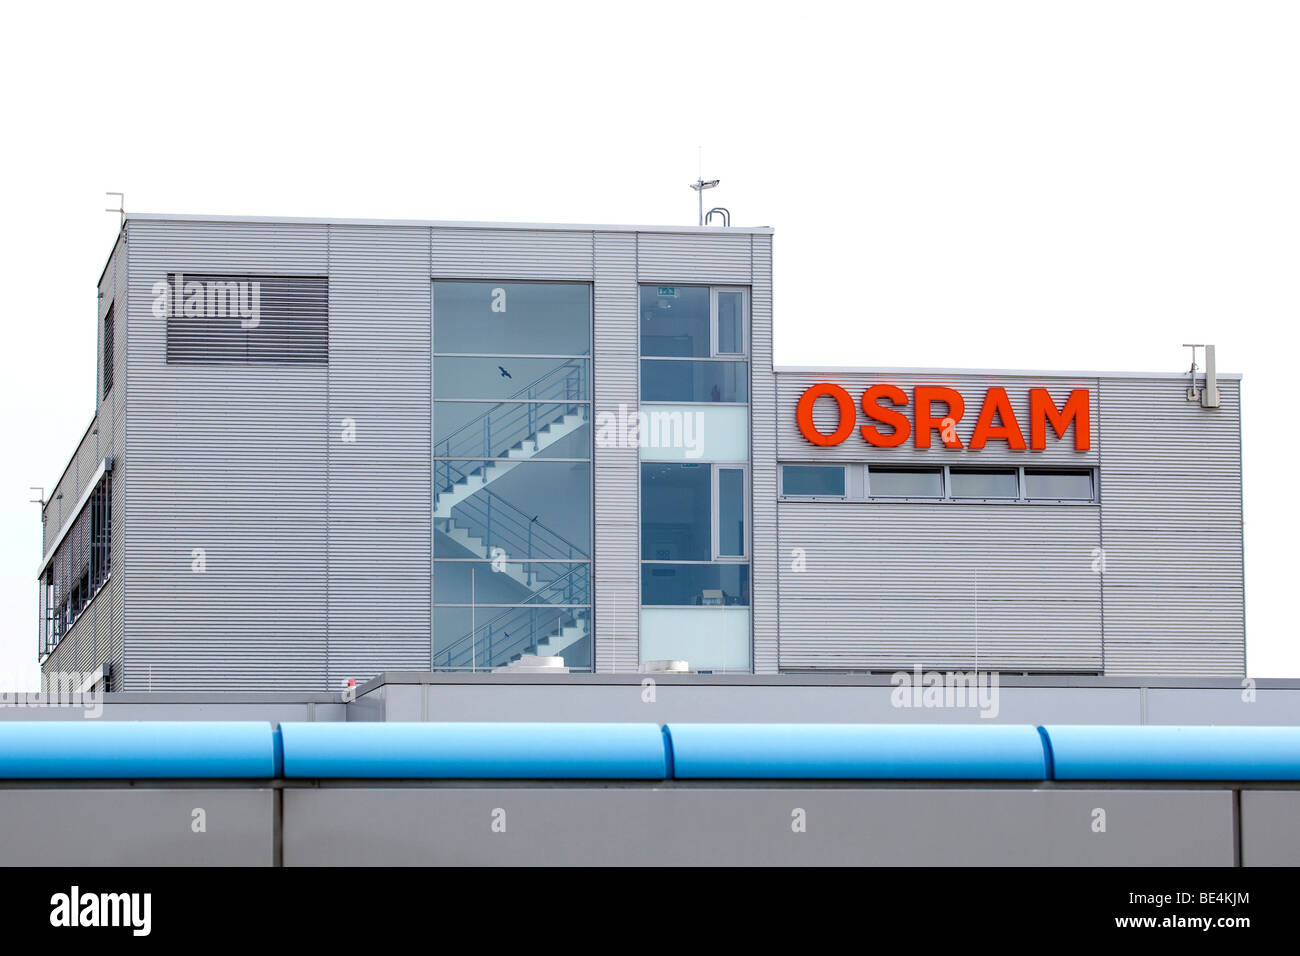 Production site of the Osram Opto Semiconductors company in Regensburg, Bavaria, Germany, Europe - Stock Image